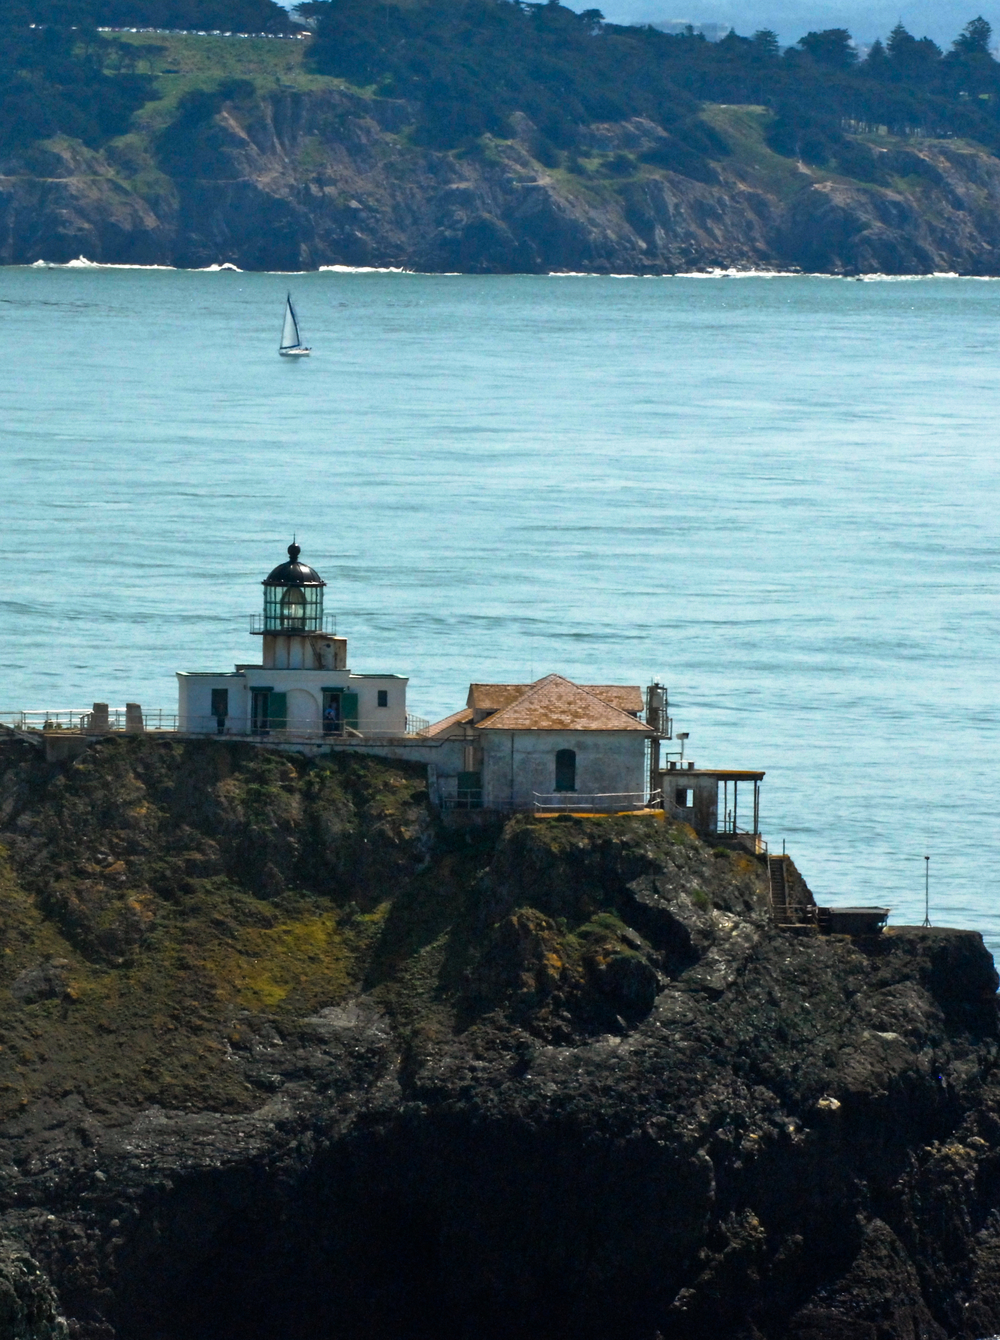 bonitalighthouse2.jpg